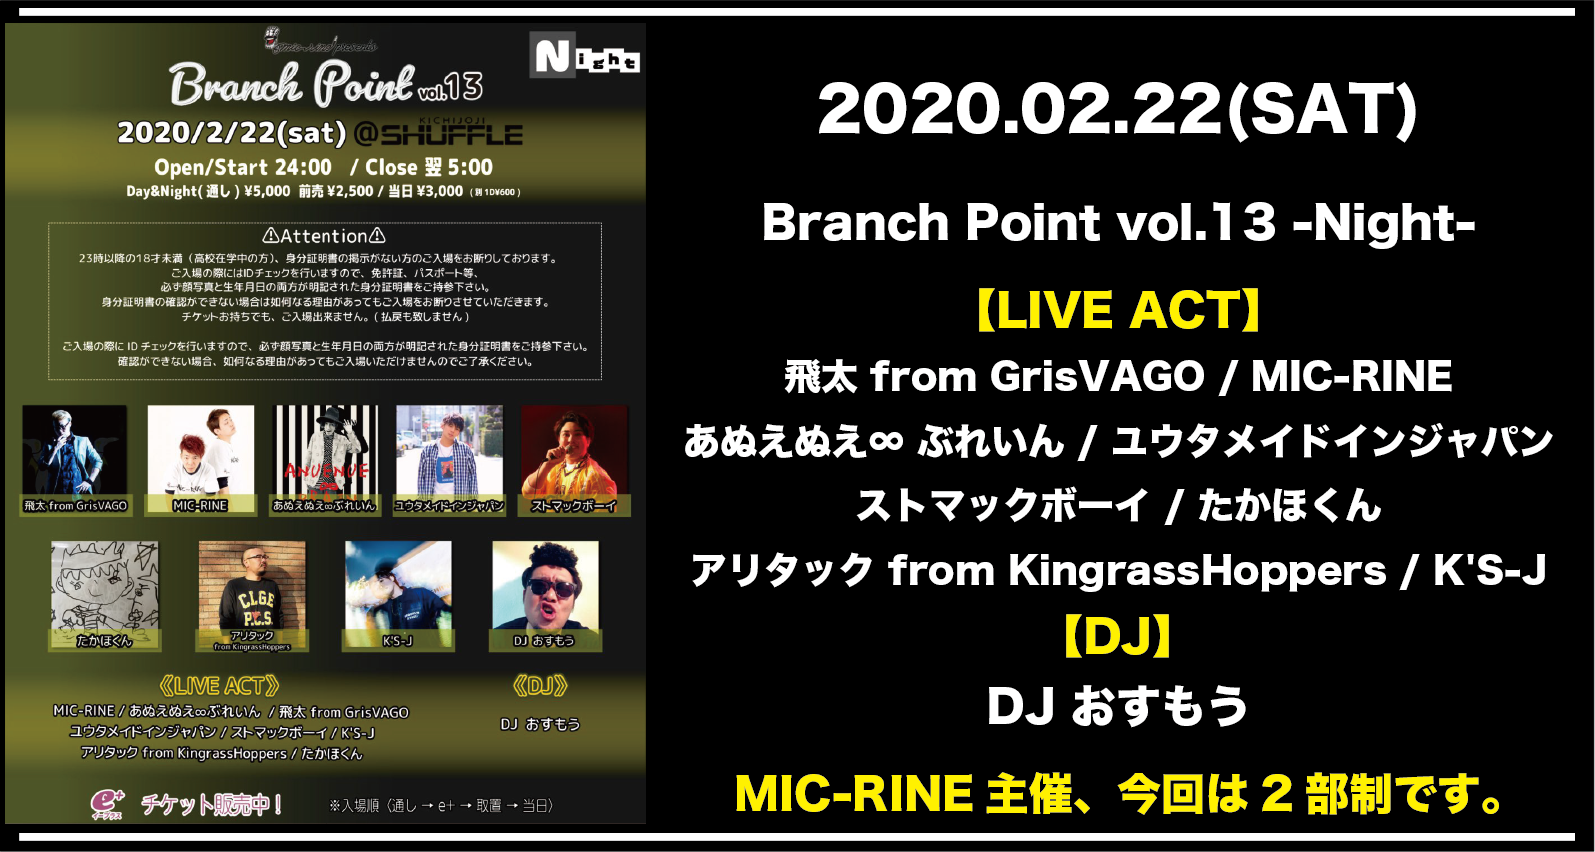 Branch Point vol.13 -Night-